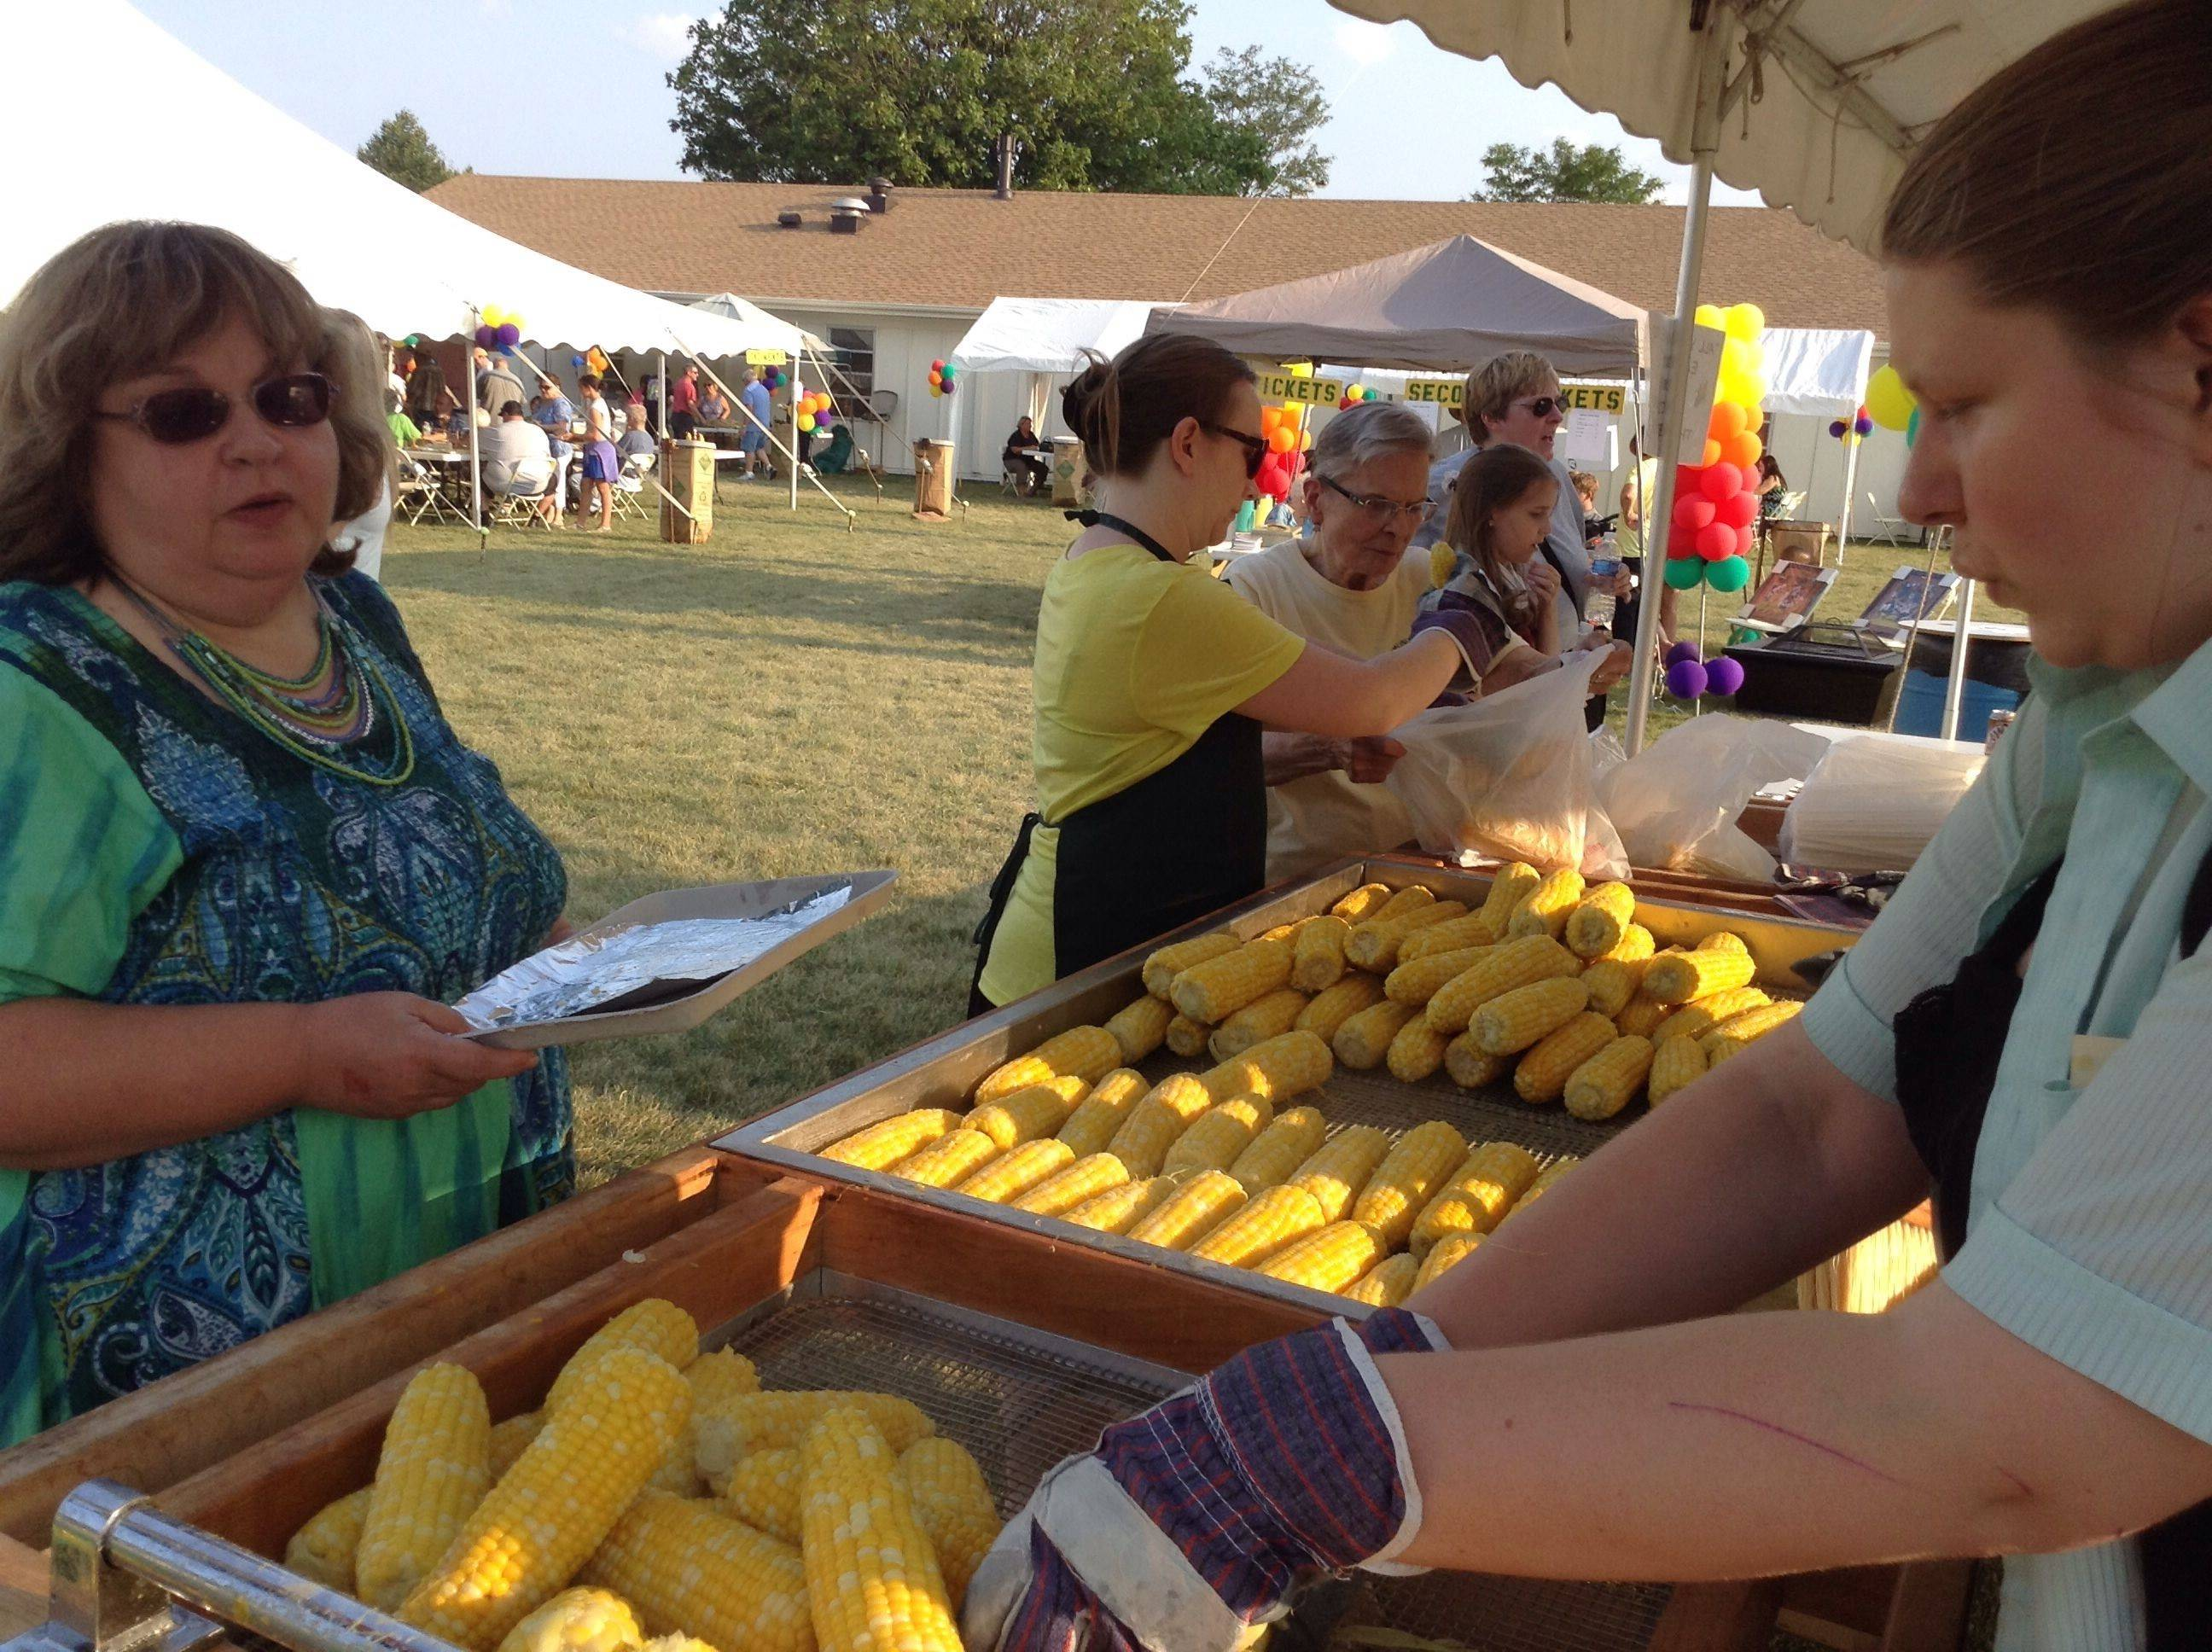 Crystal Fitzgerald, right, serves up fresh ears Saturday at the 58th annual Cornfest in Rolling Meadows.